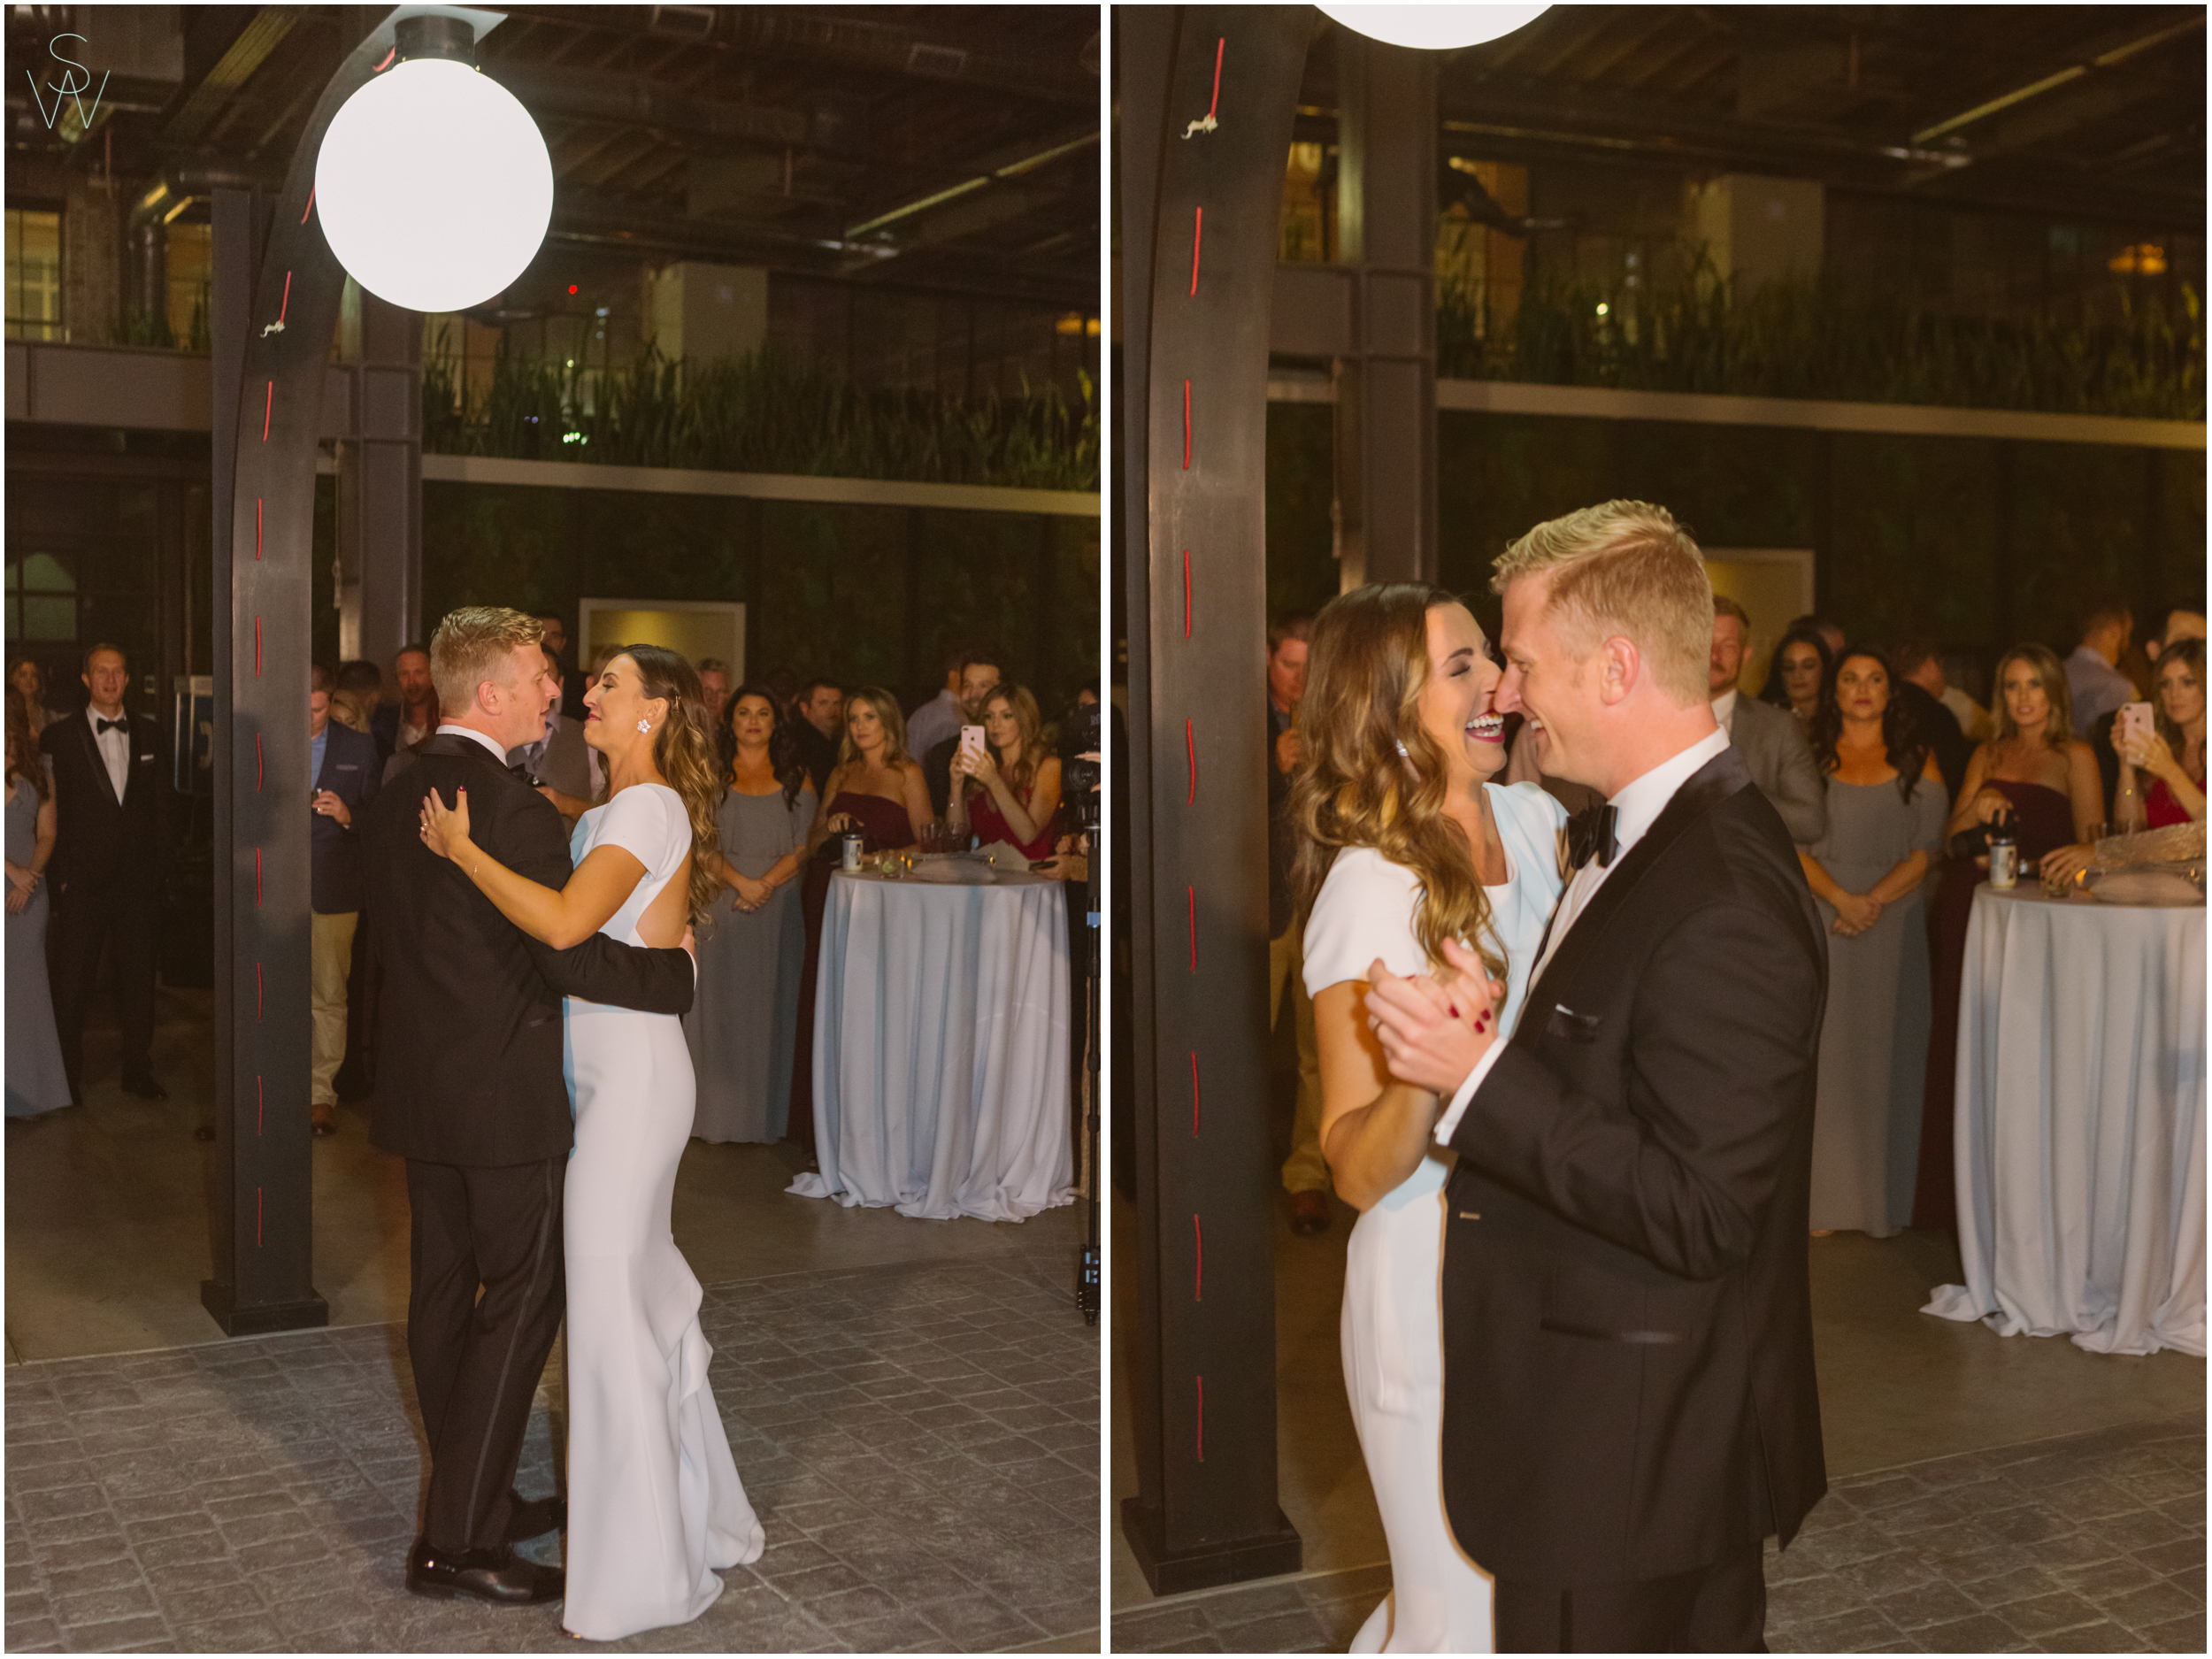 179THE.UNDERGROUND.ELEPHANT.Firstdance.wedding.photography.shewanders.JPG